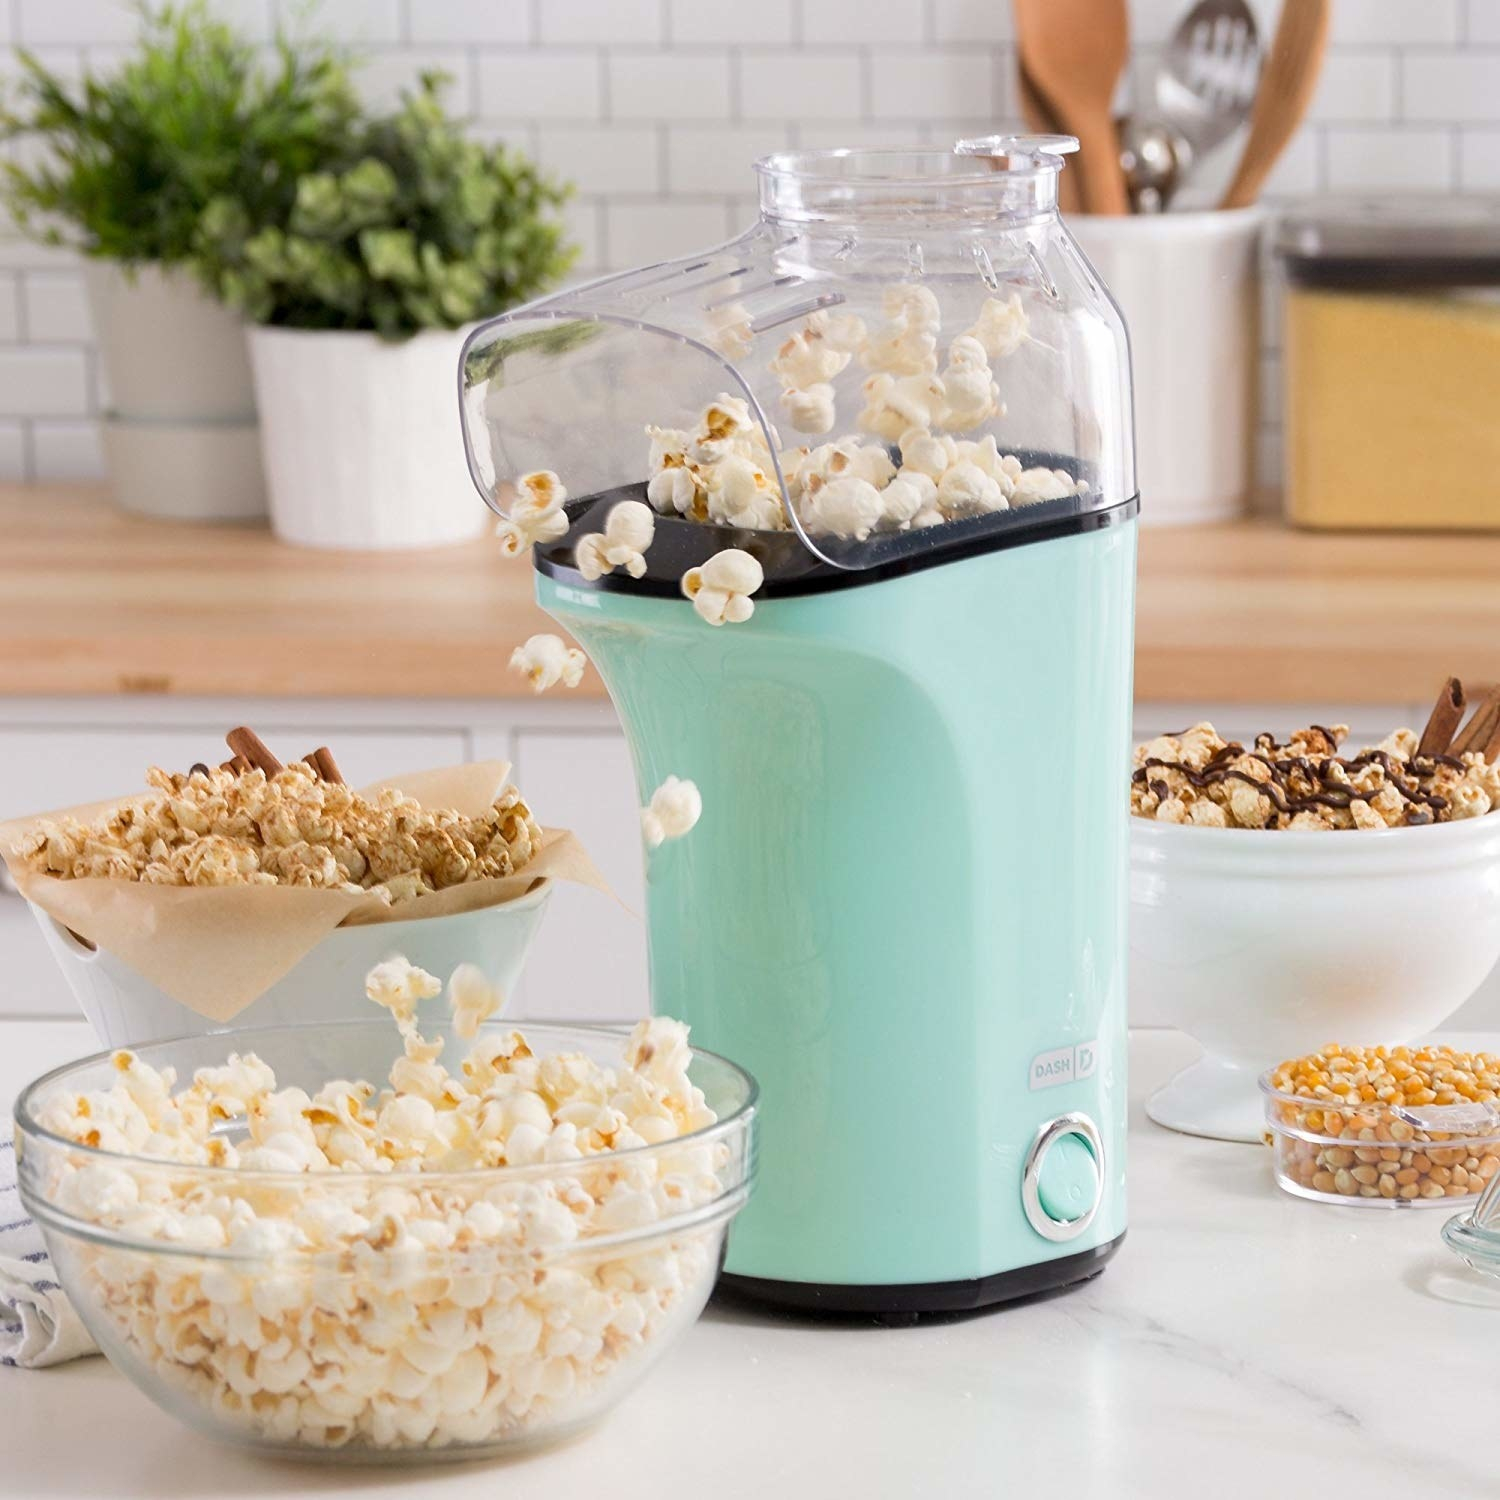 the popcorn machine dispensing popcorn into a bowl next to bowls of other various snacks